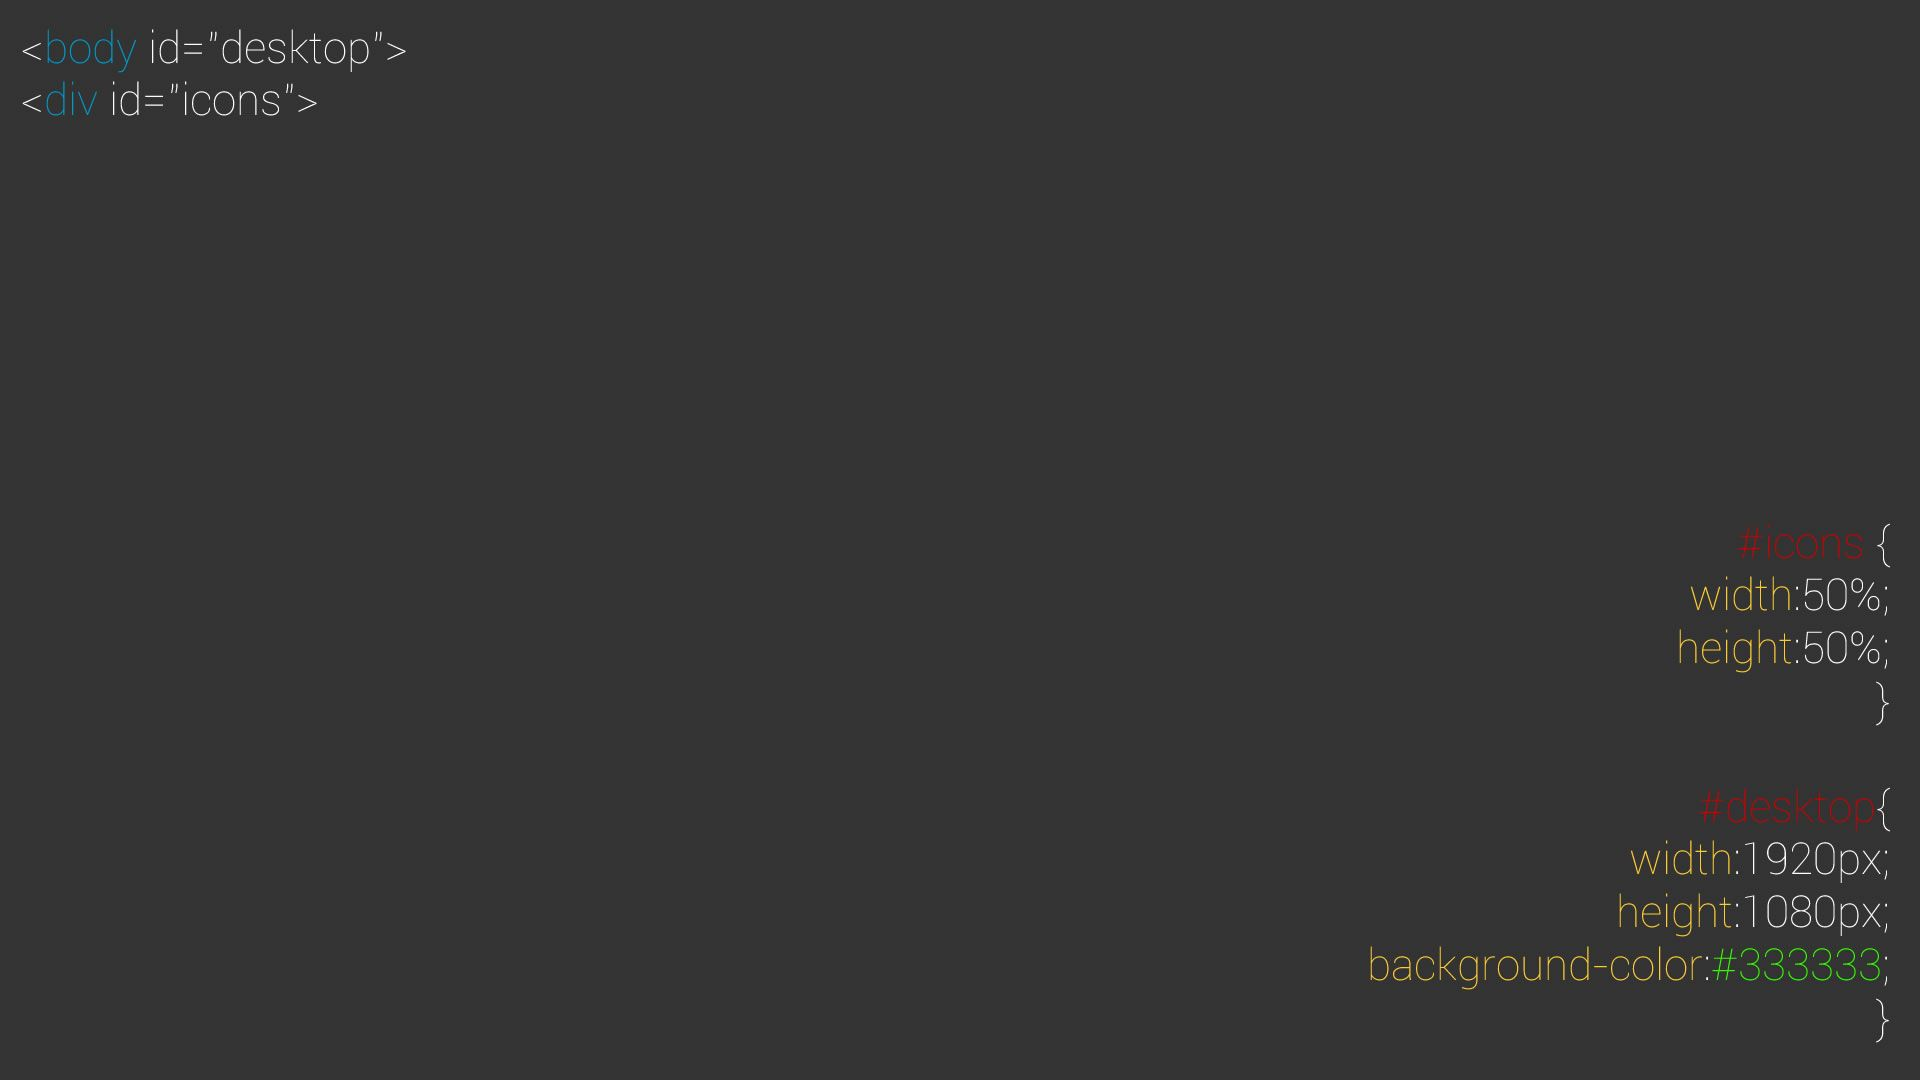 1920x1080 v2]Minimalist, highlighted HTML-CSS code style [1920x1080] : wallpaper